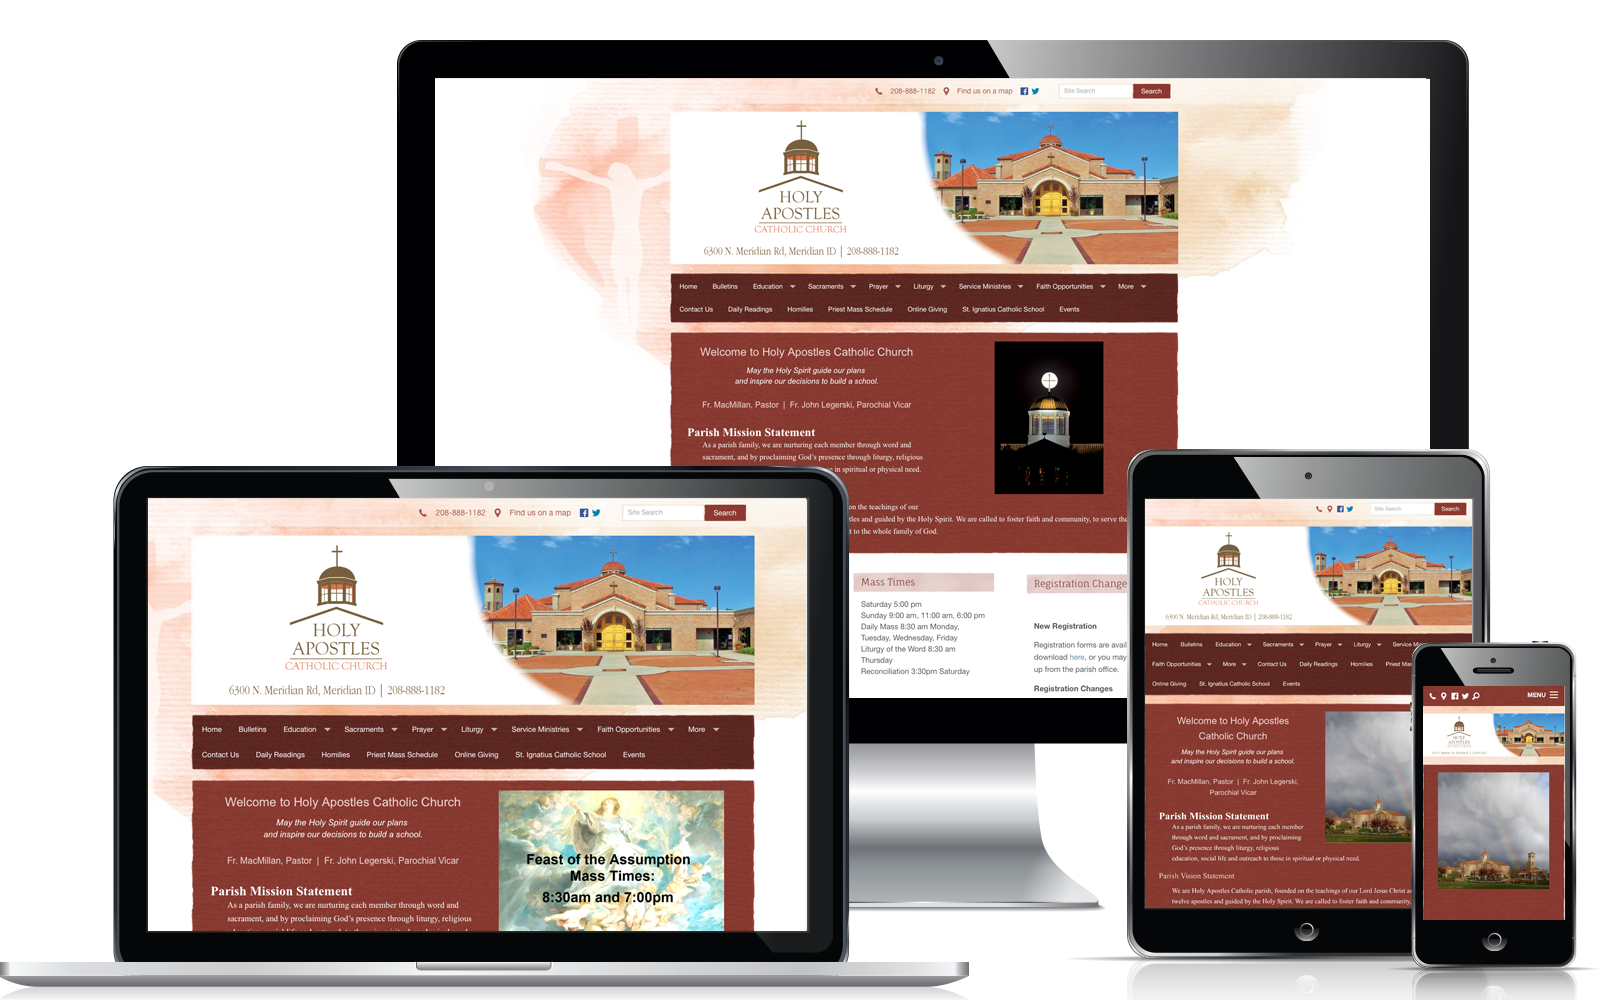 WeConnect Church Website - Holy Apostles Catholic Church and School